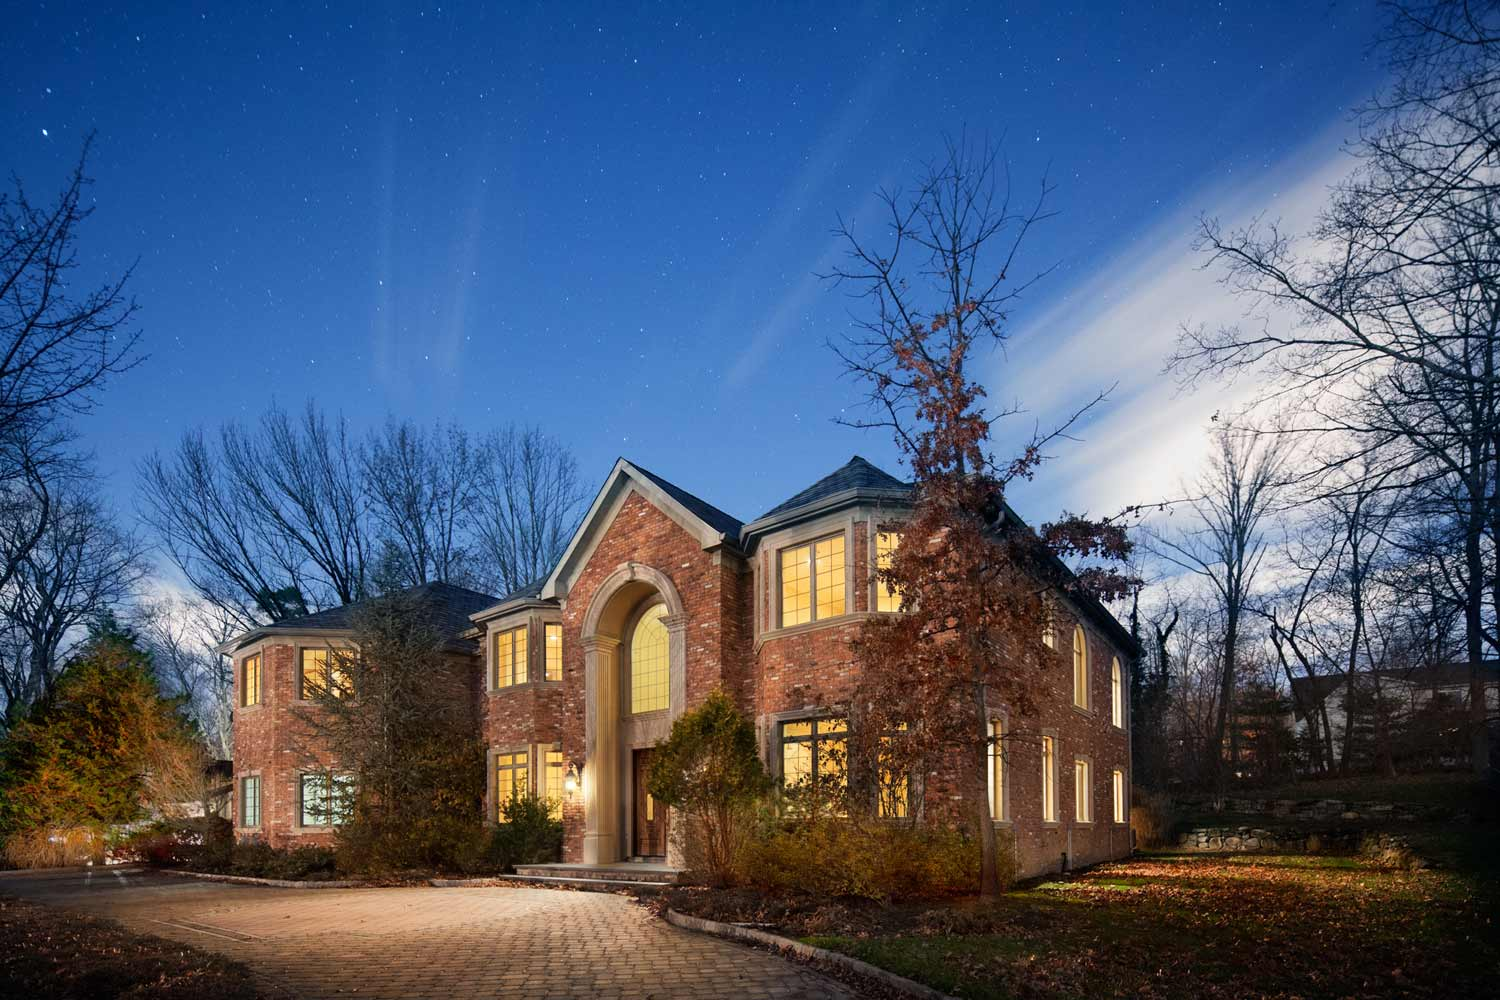 7 Fox Hill Road, Upper Saddle River, NJ